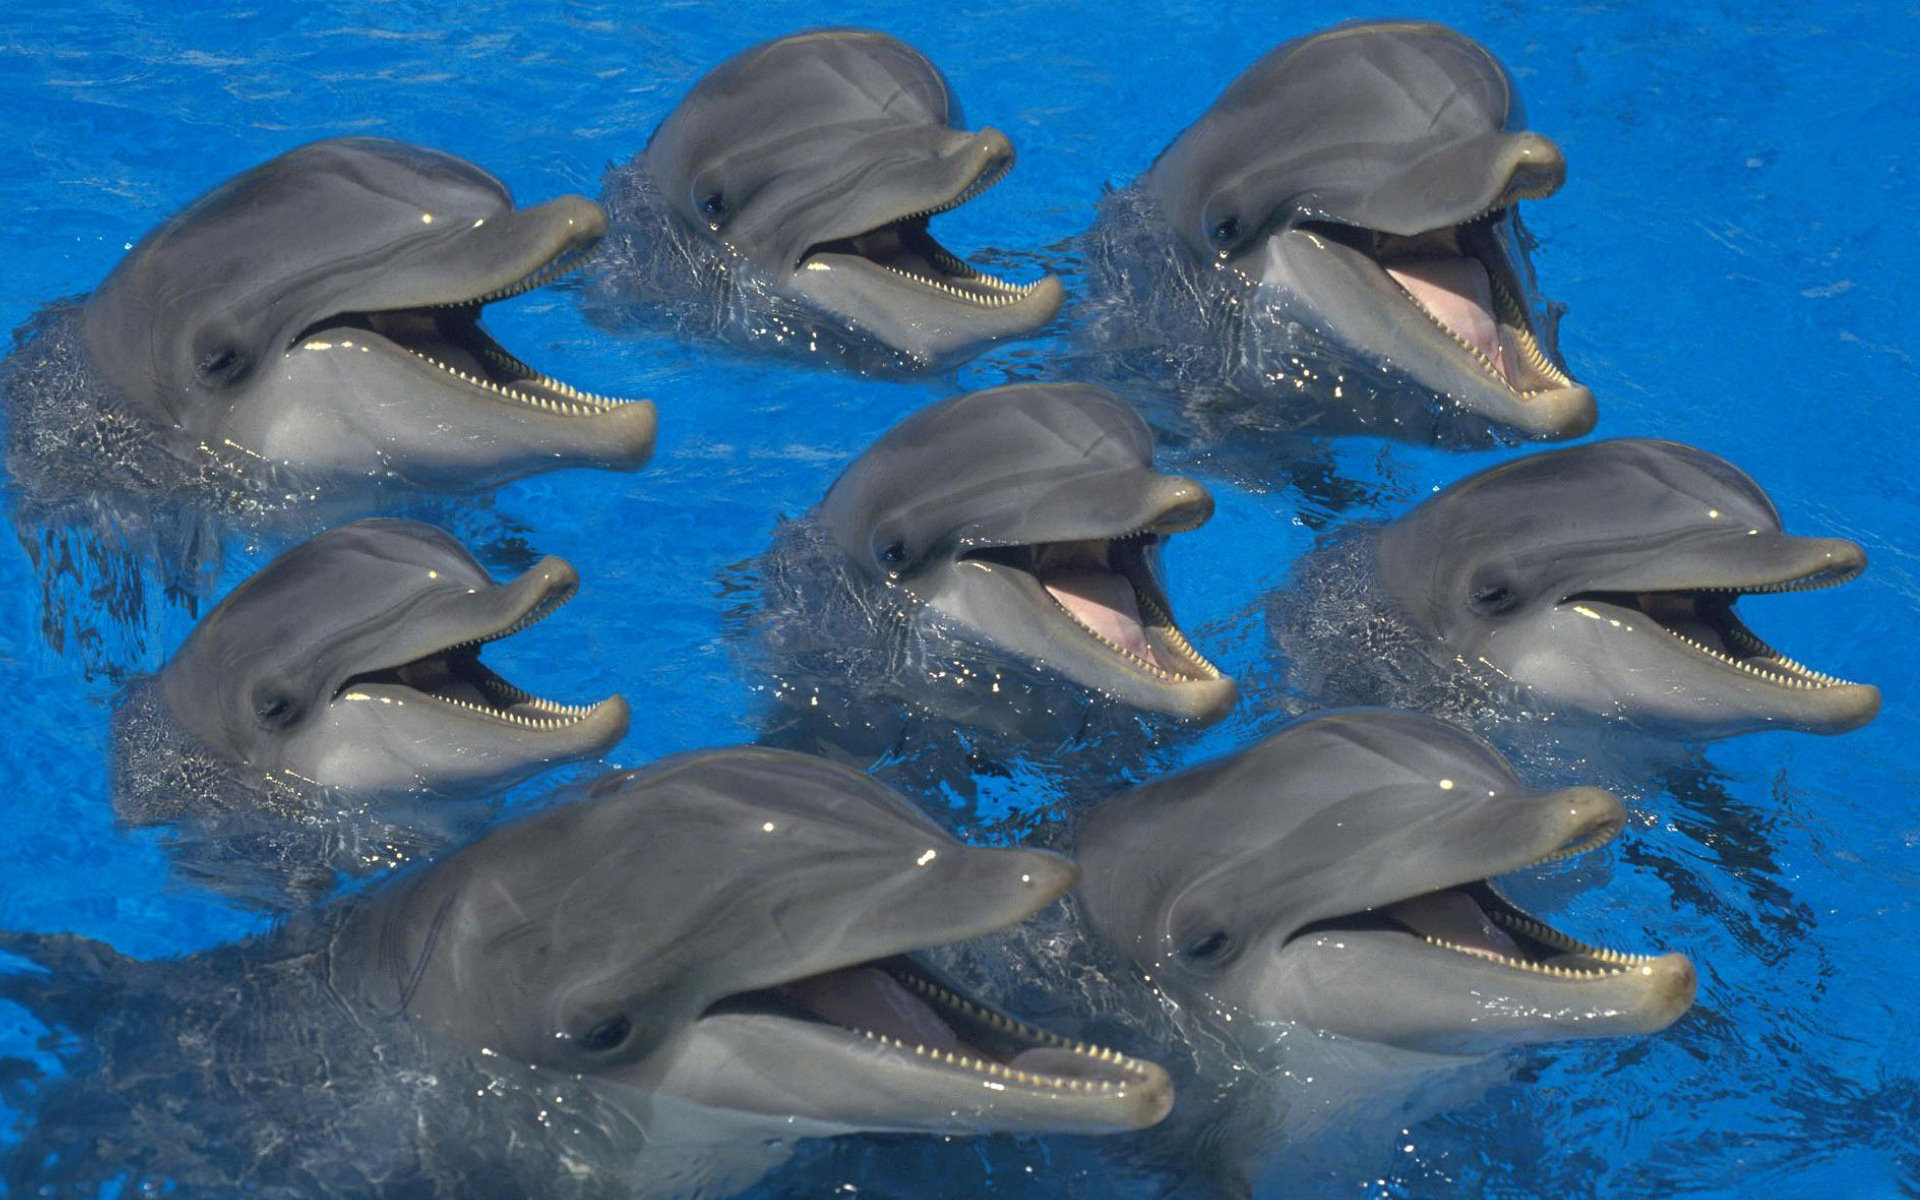 Dolphins-221921